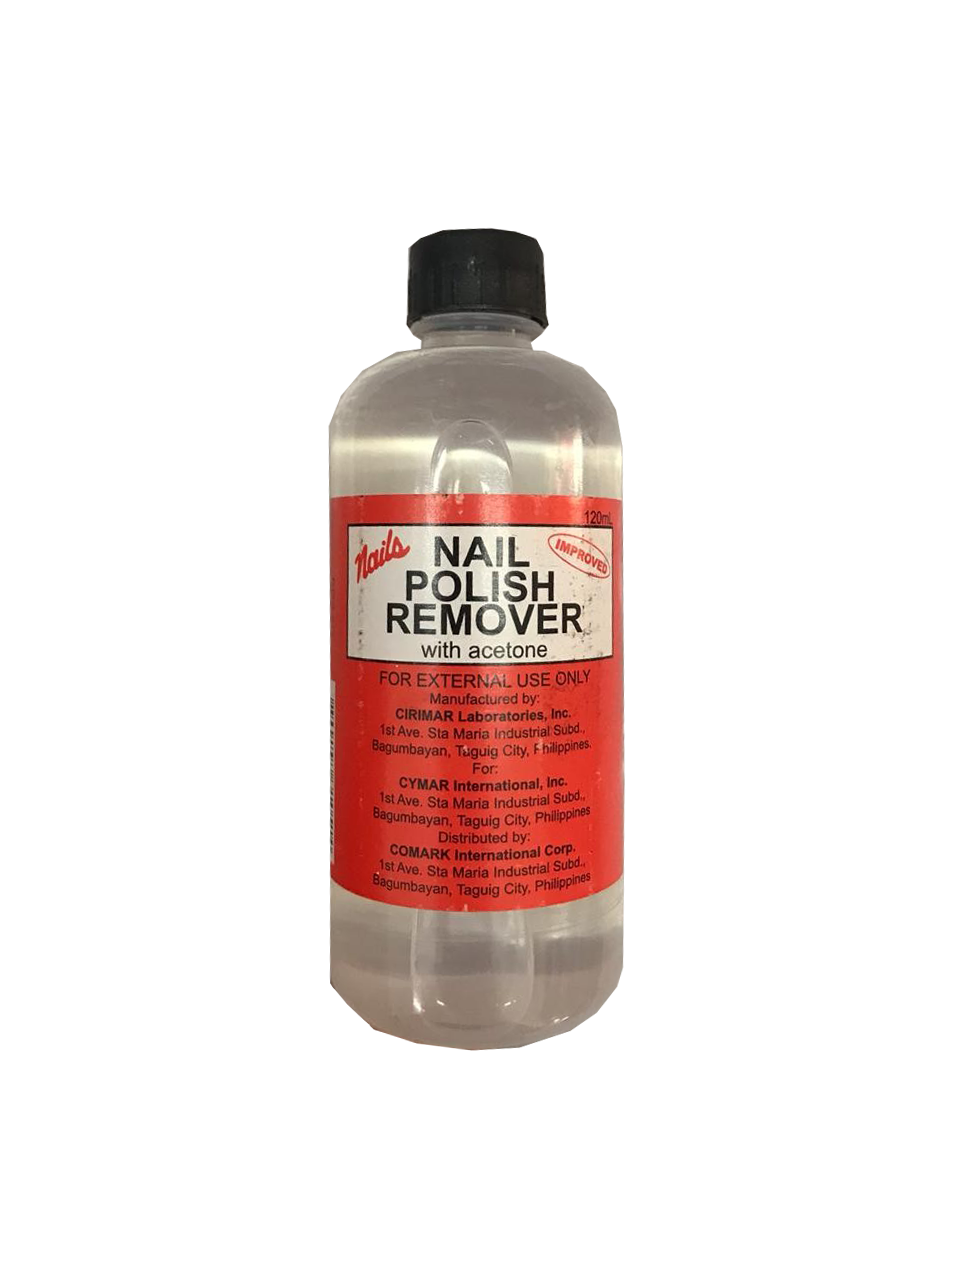 Nails Nail Polish Remover with Acetone 120ml